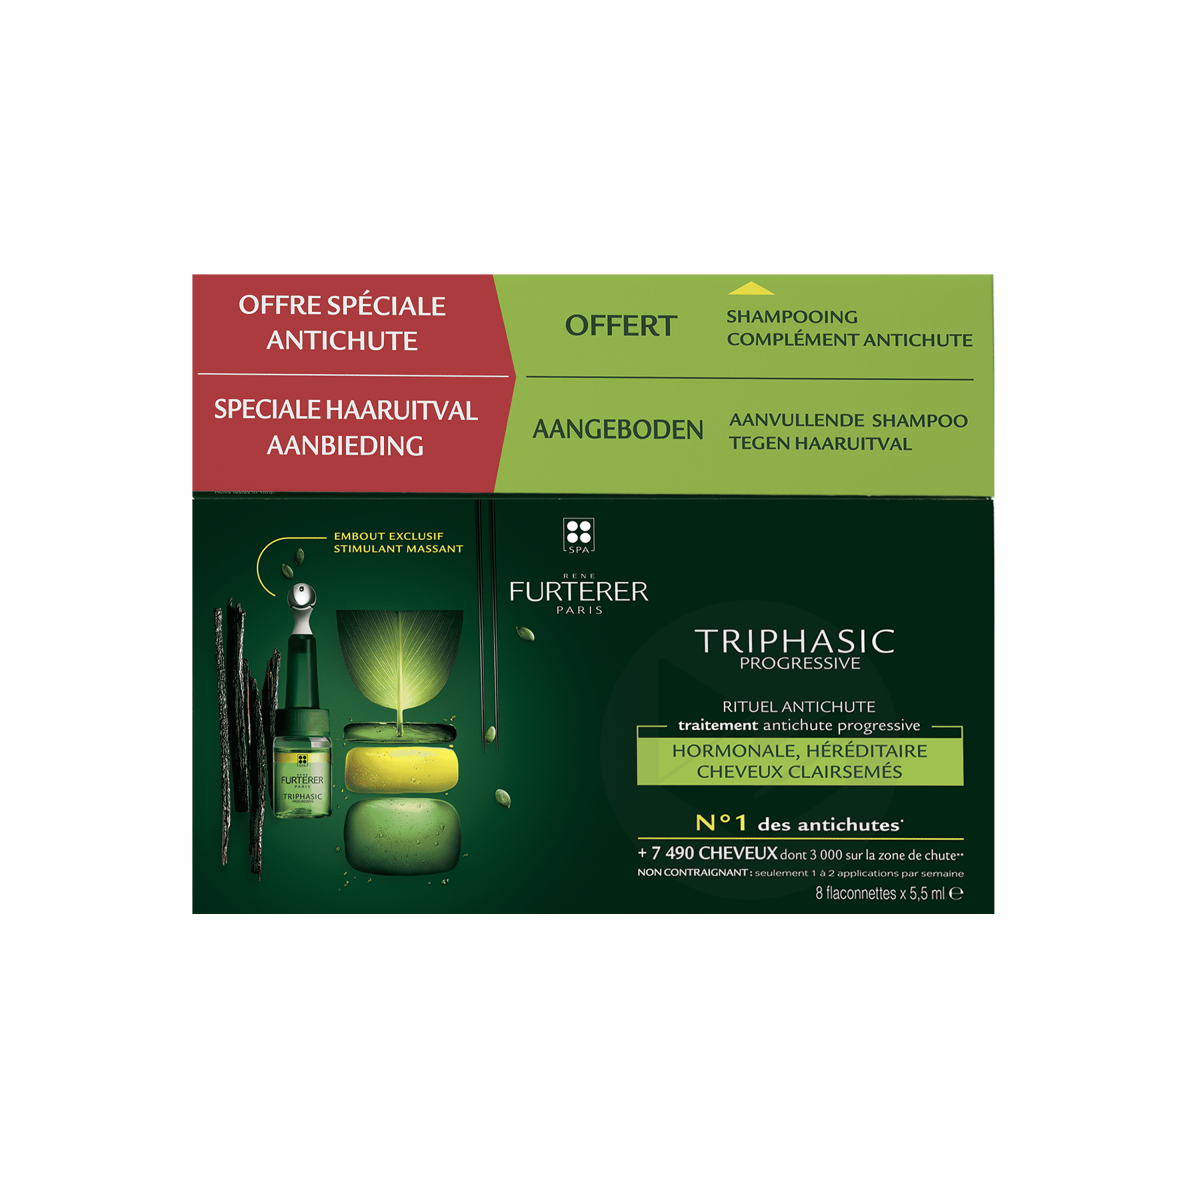 Triphasic Progressive Rituel Anti Chute